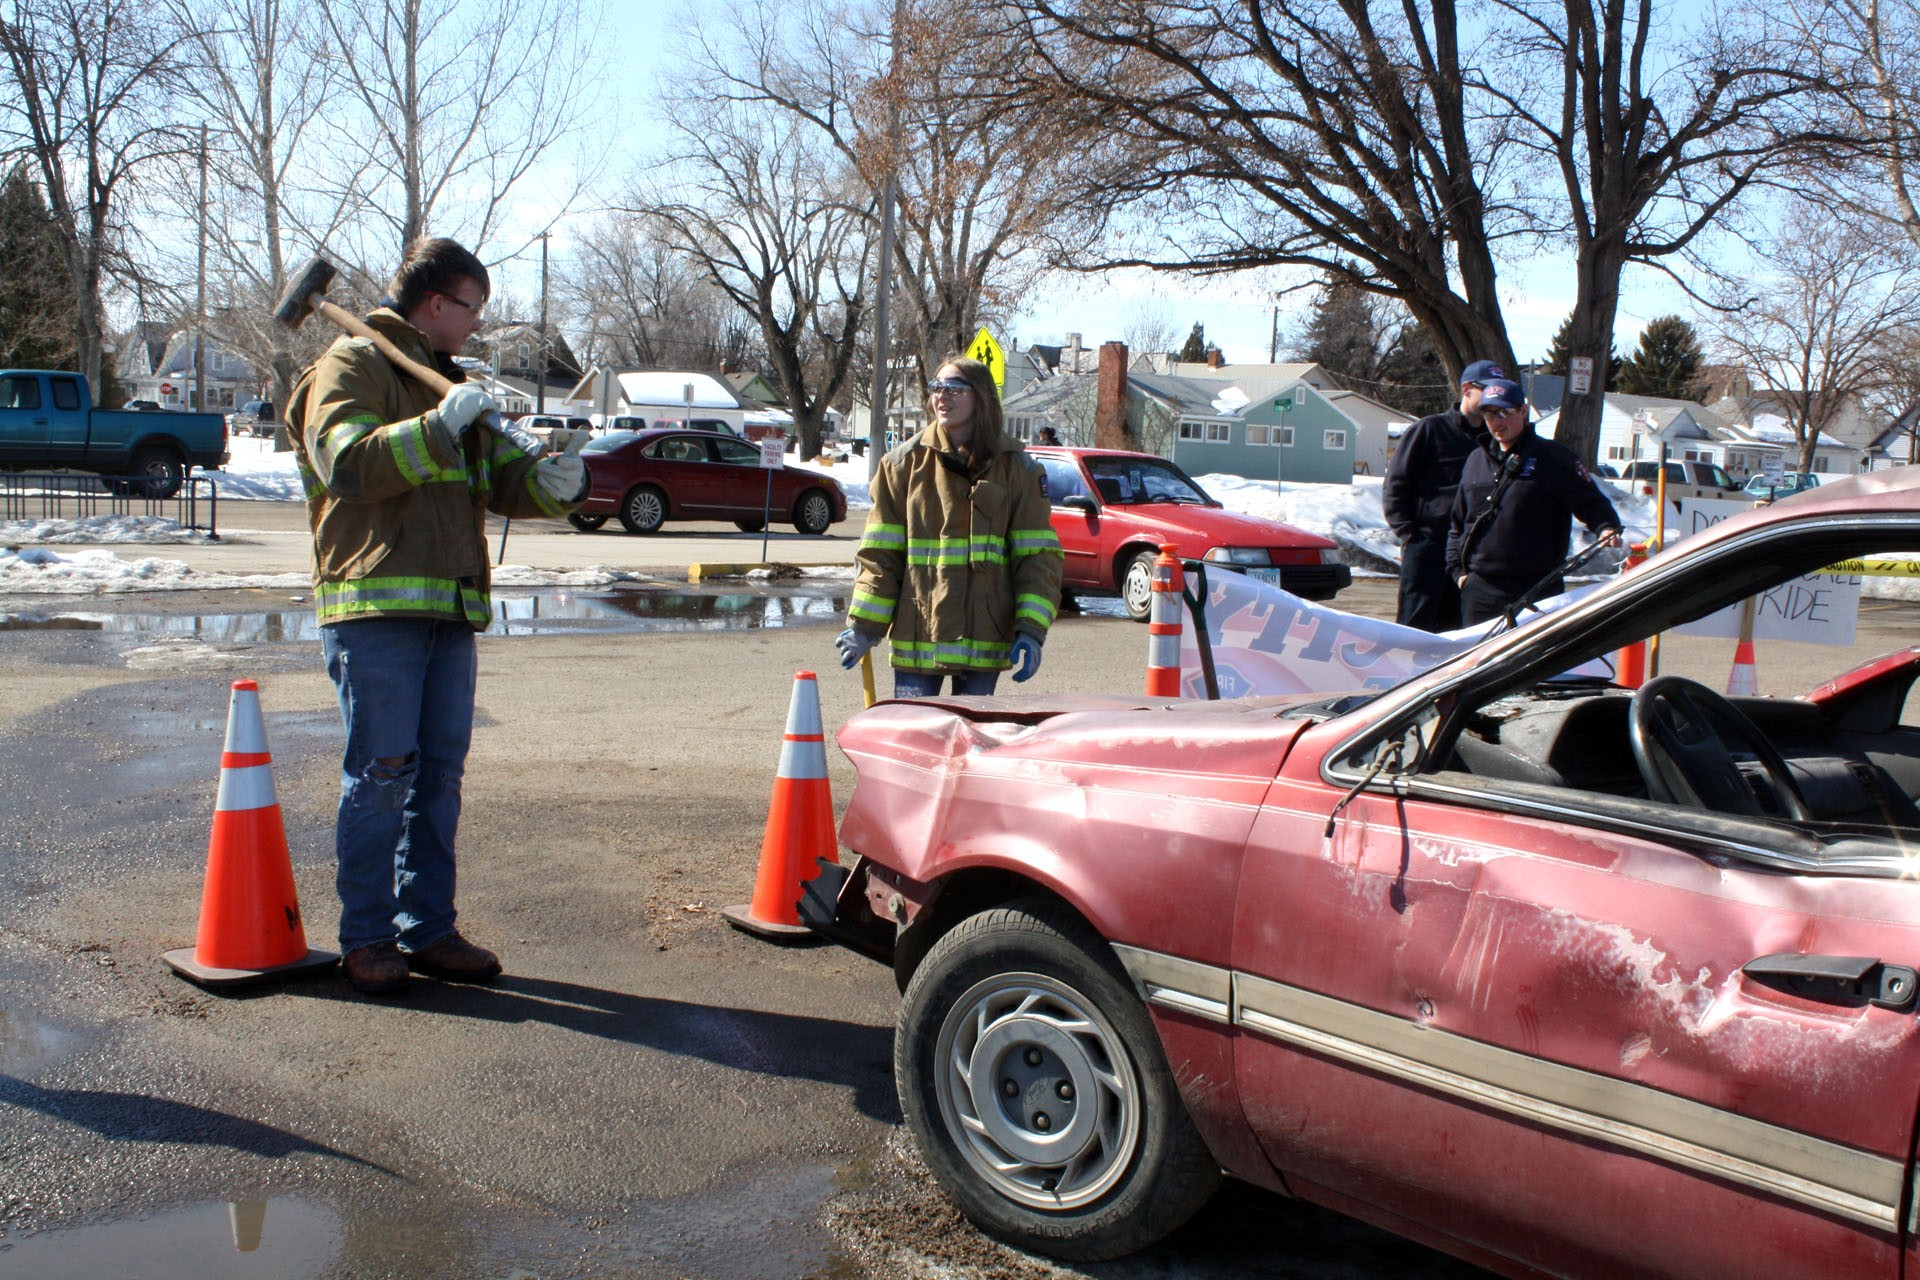 <strong>Tyson Hancock and  Kaitiey Penrod, right, both juniors get ready to put a few dents in the Ford Tempo. Though there weren't many students at the beginning of lunch, the car and spectacle would draw a sizable crowd as students began to return from getting food.</strong>